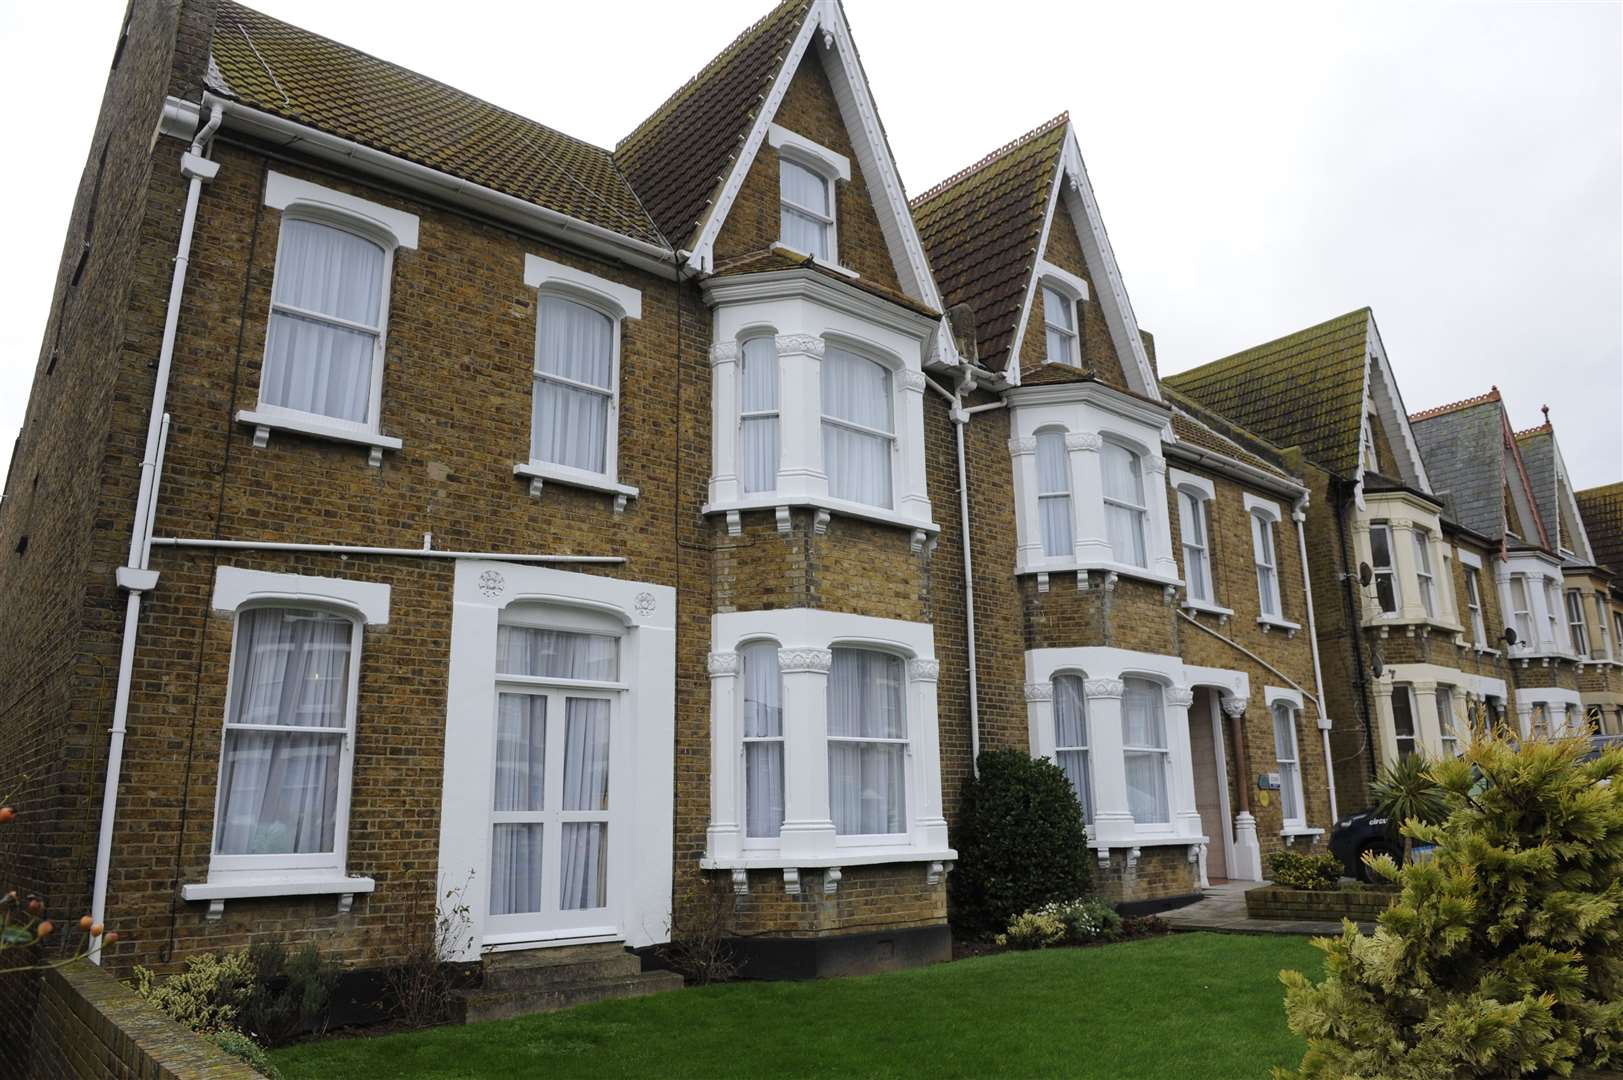 Cumberland Care Home, Beltinge Road, Herne Bay